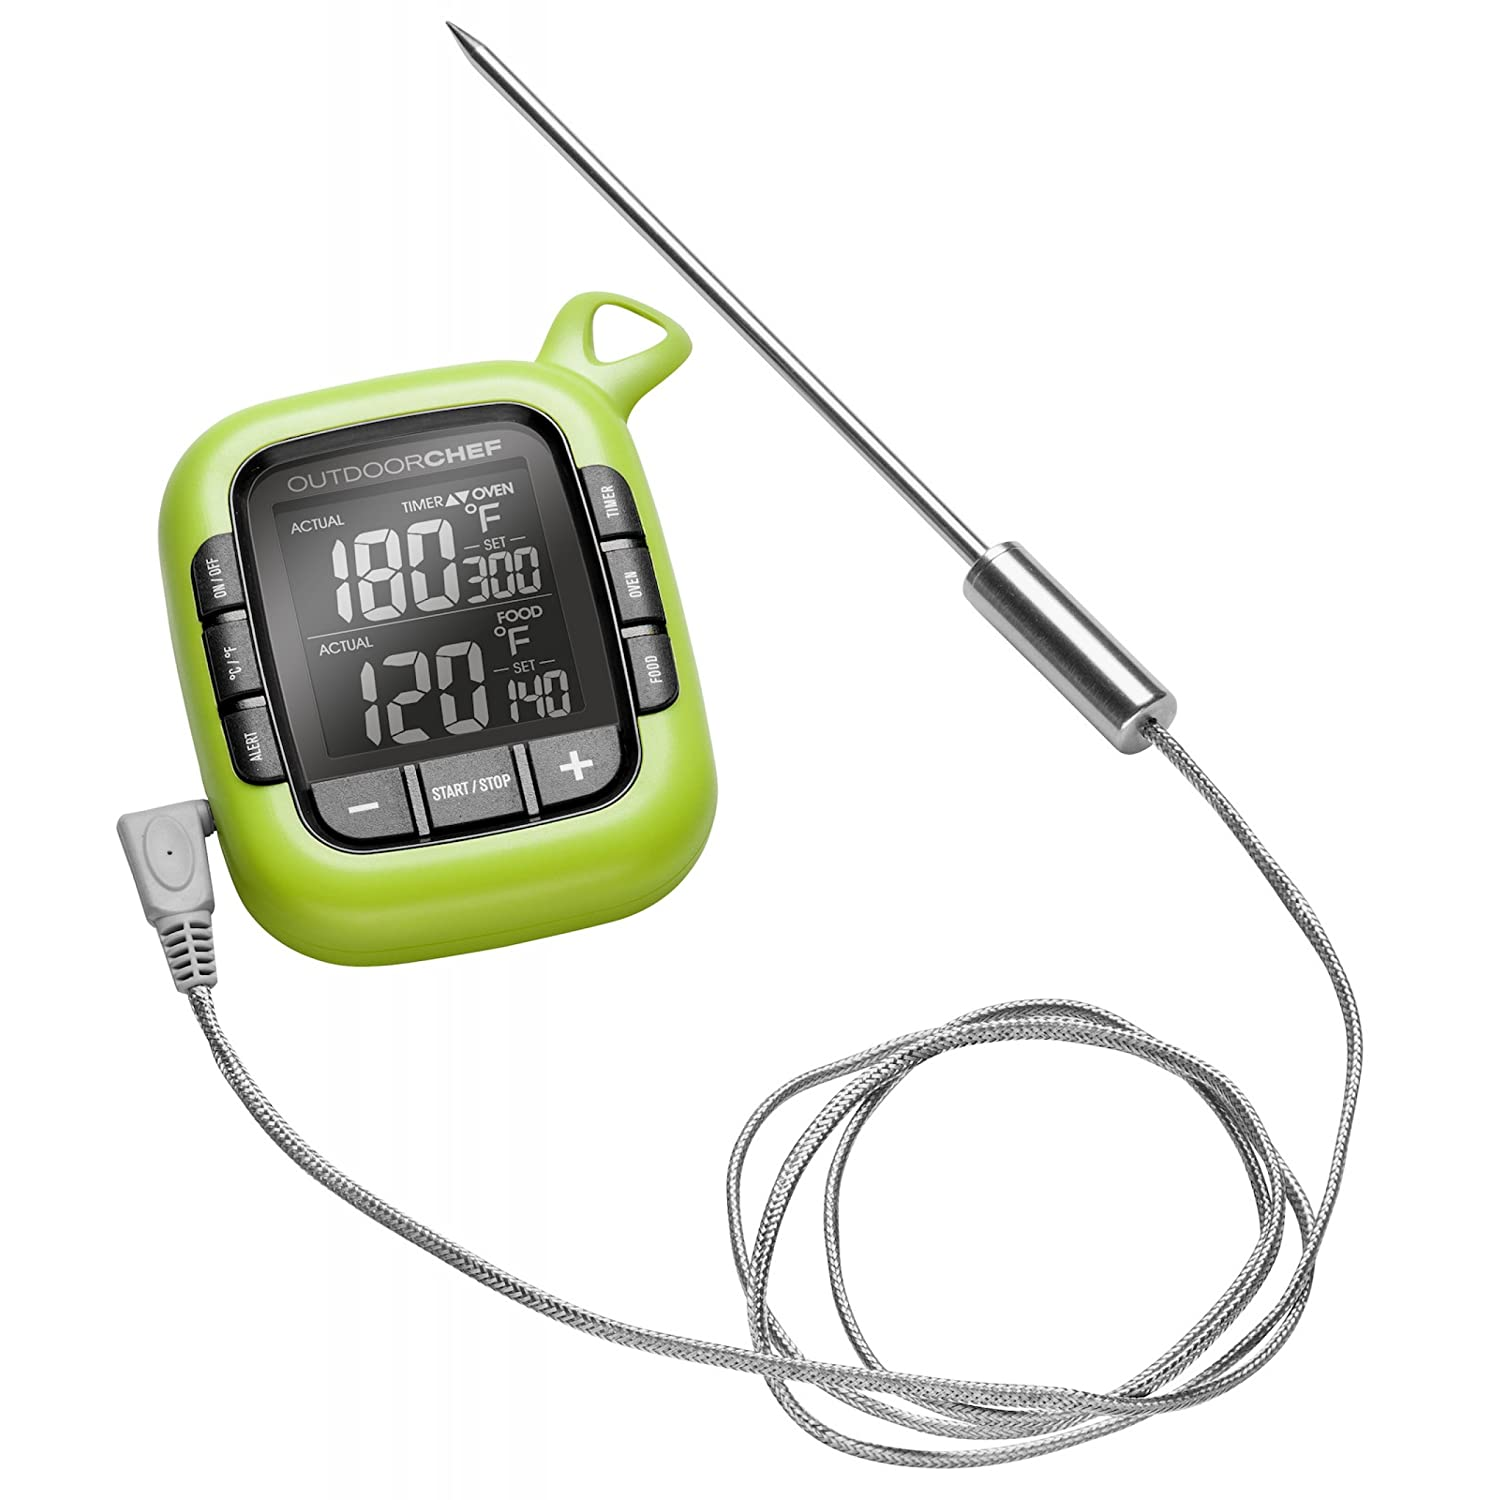 Outdoorchef Gourmet Check Thermometer 14.491.34